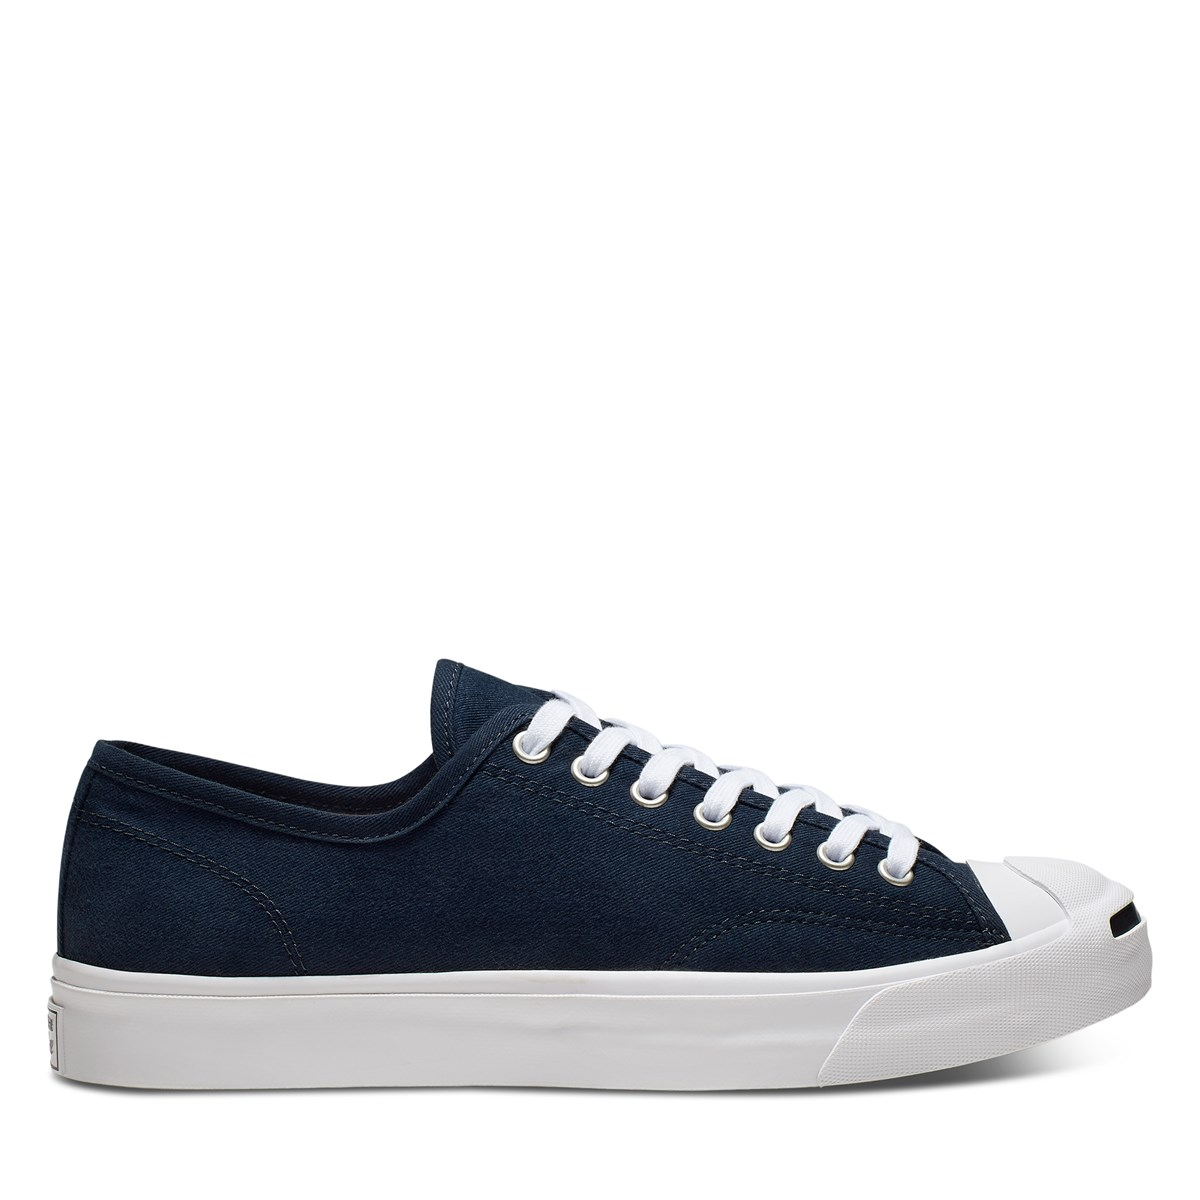 Men's Jack Purcell Sneakers in Blue